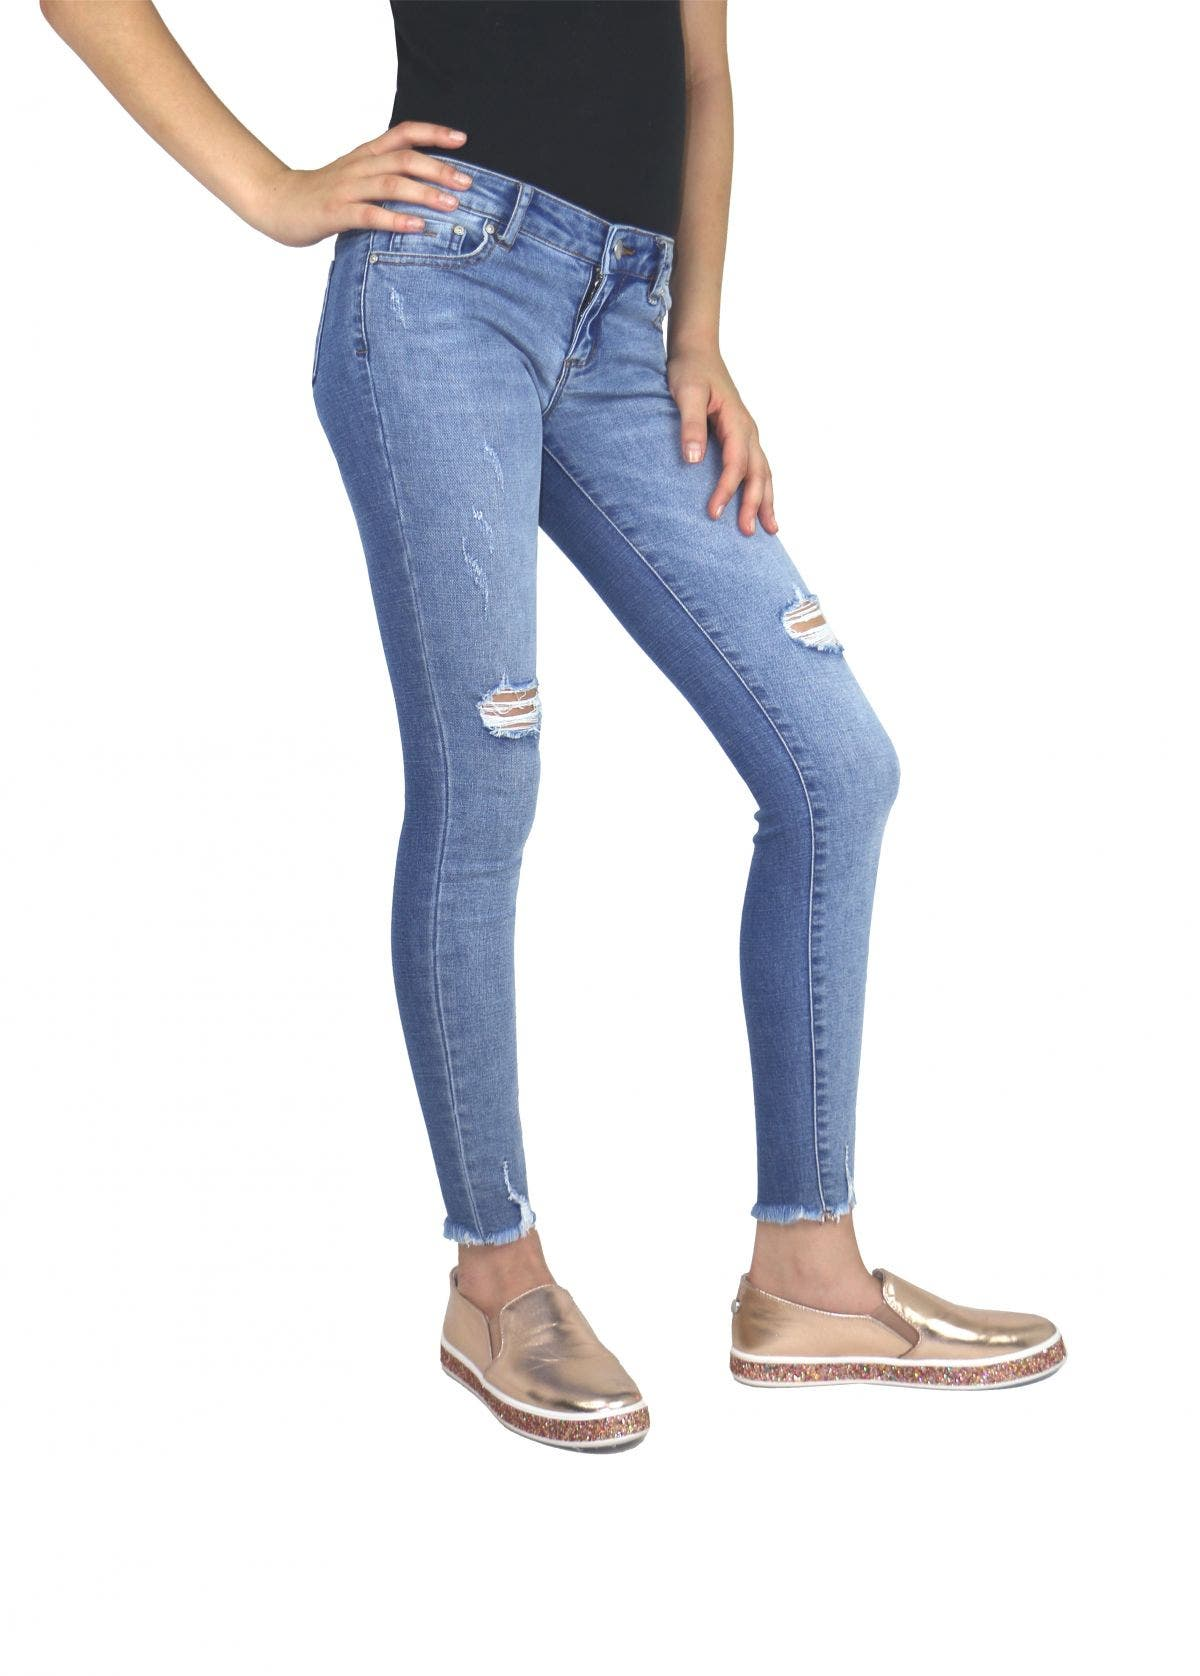 Tractr Girl Two Toned Skinny Jean